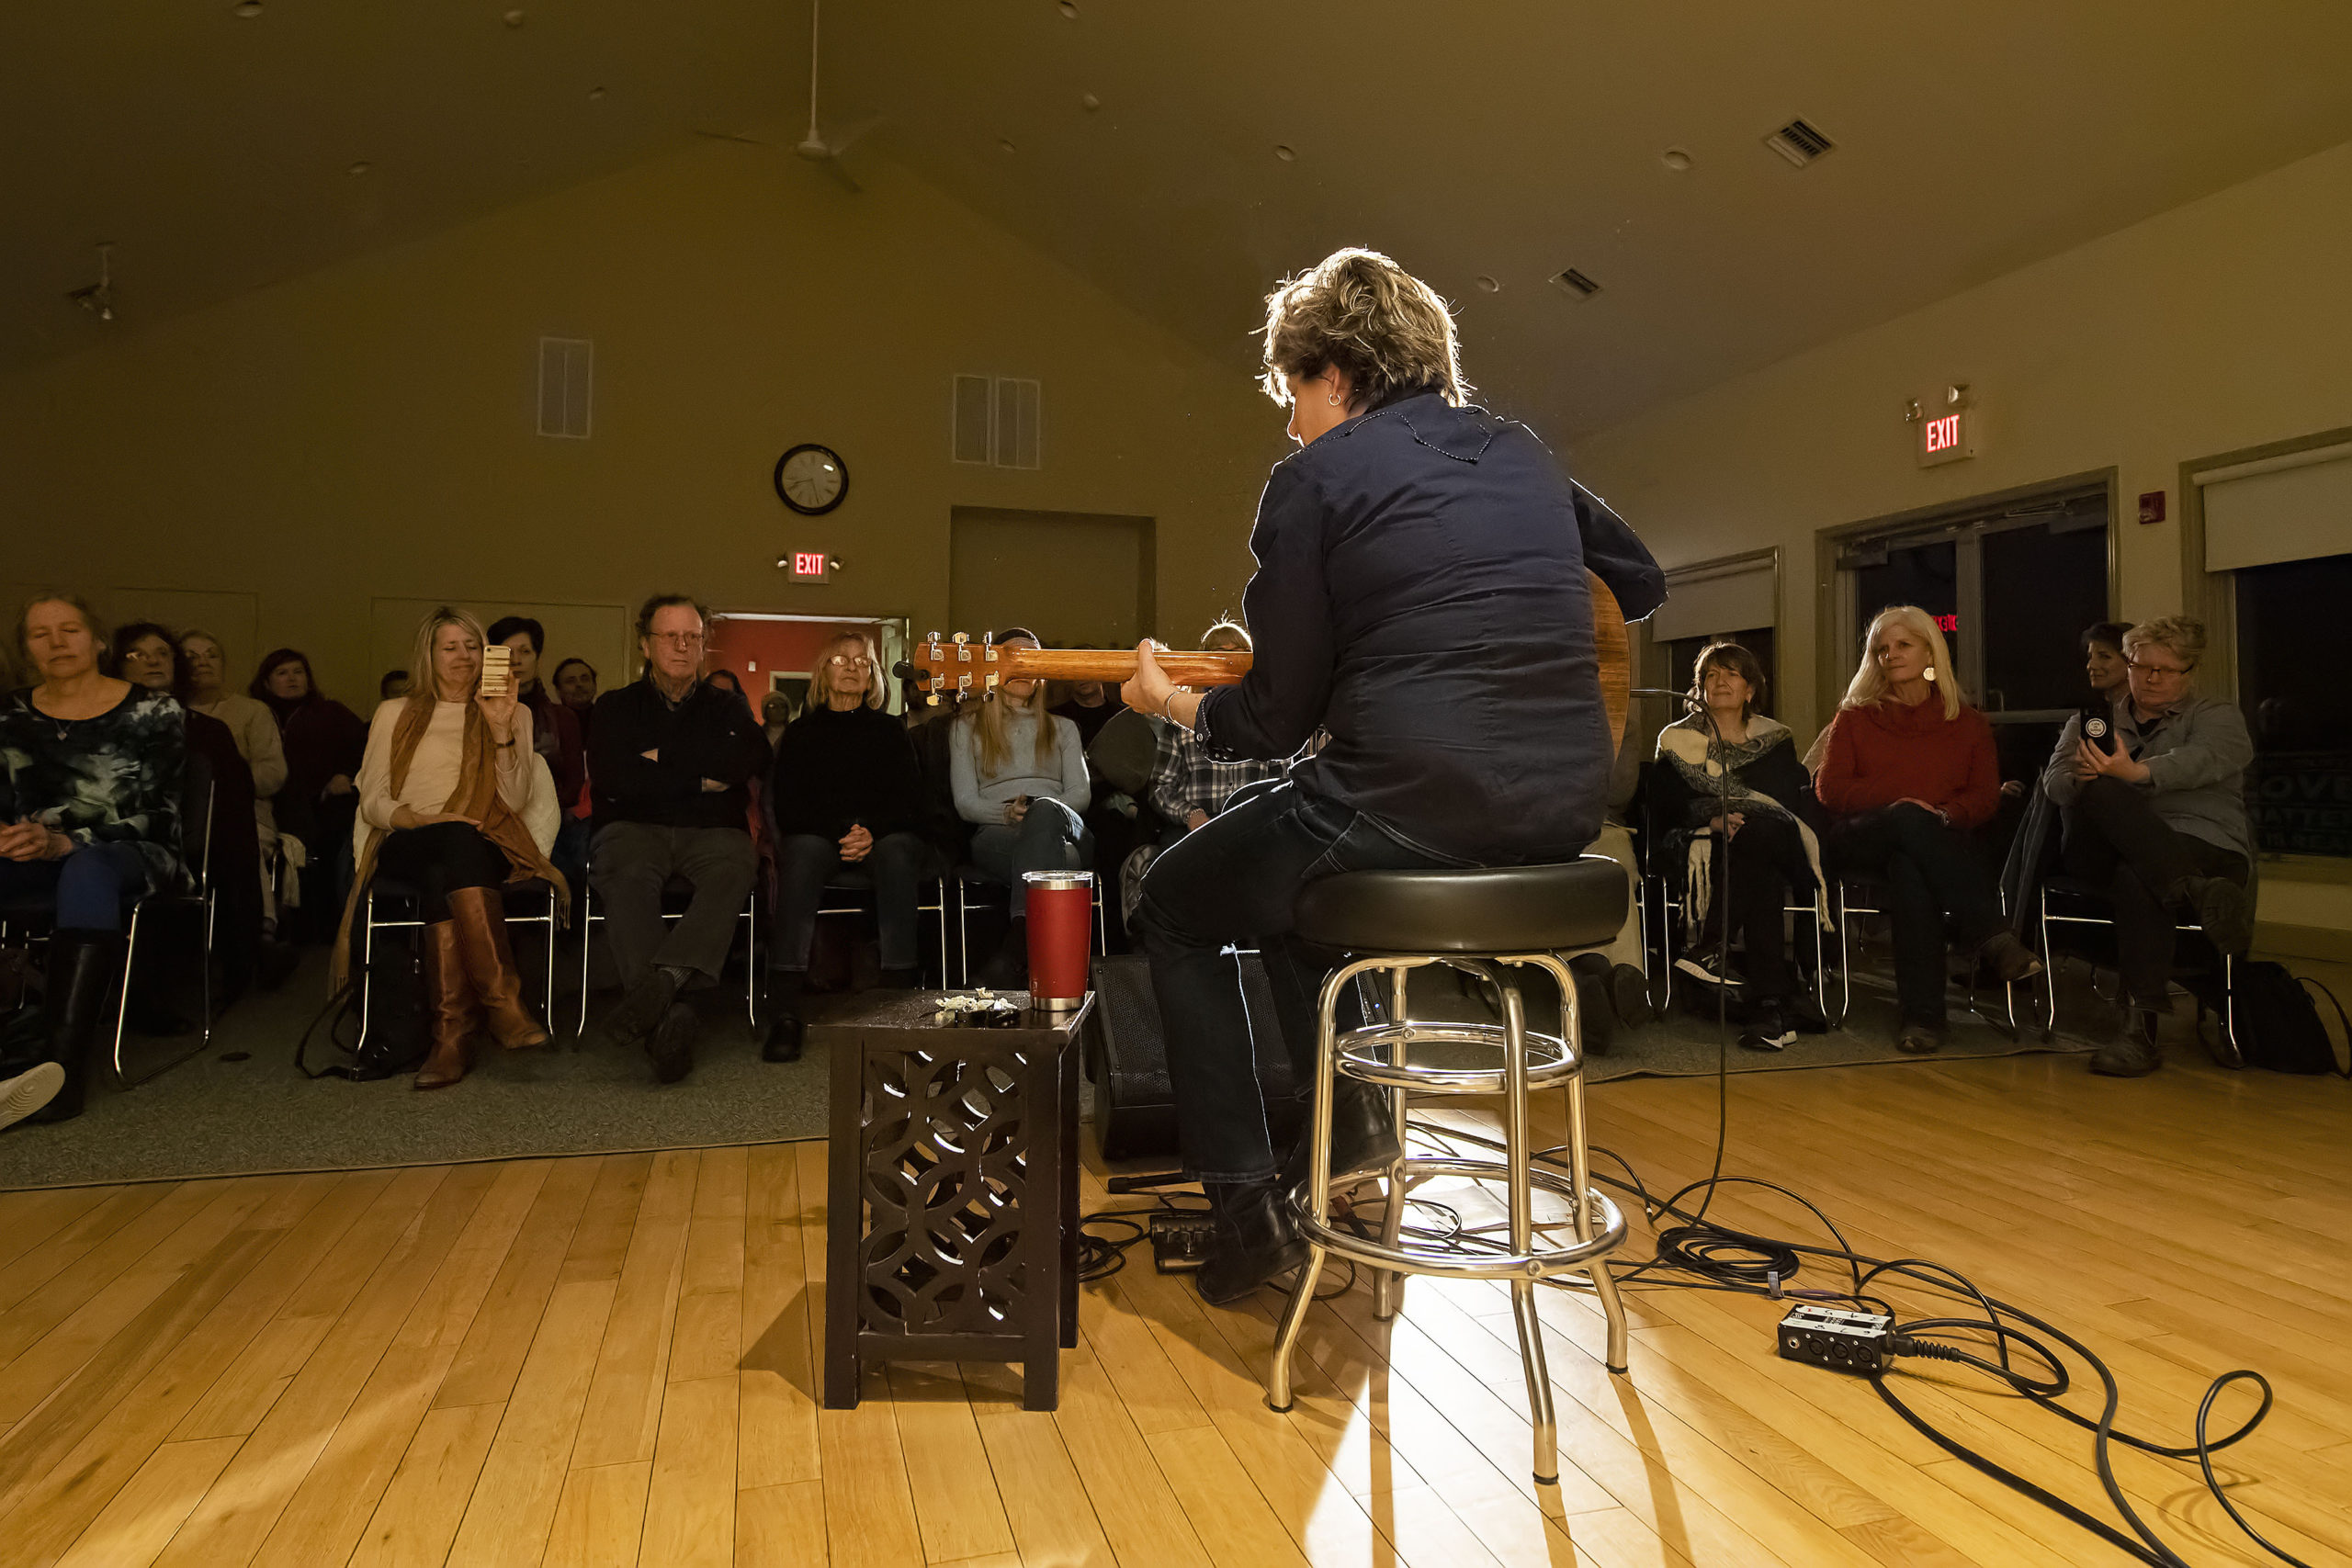 Inda Eaton was the guest at the sixth annual Songwriters Share Concert Series, hosted by the Unitarian Universalist Congregation in Bridgehampton on Friday. MICHAEL HELLER